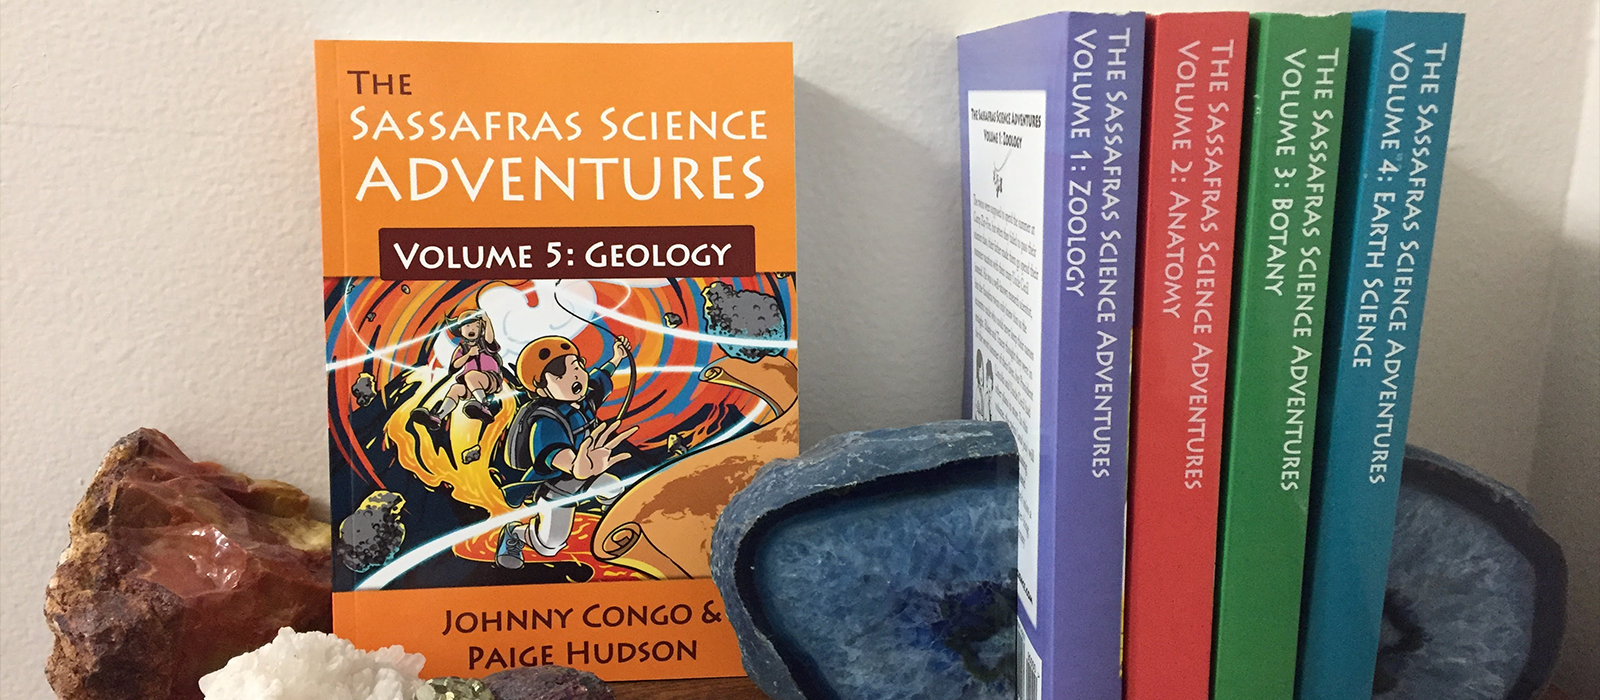 The Sassafras Science Adventures Novels